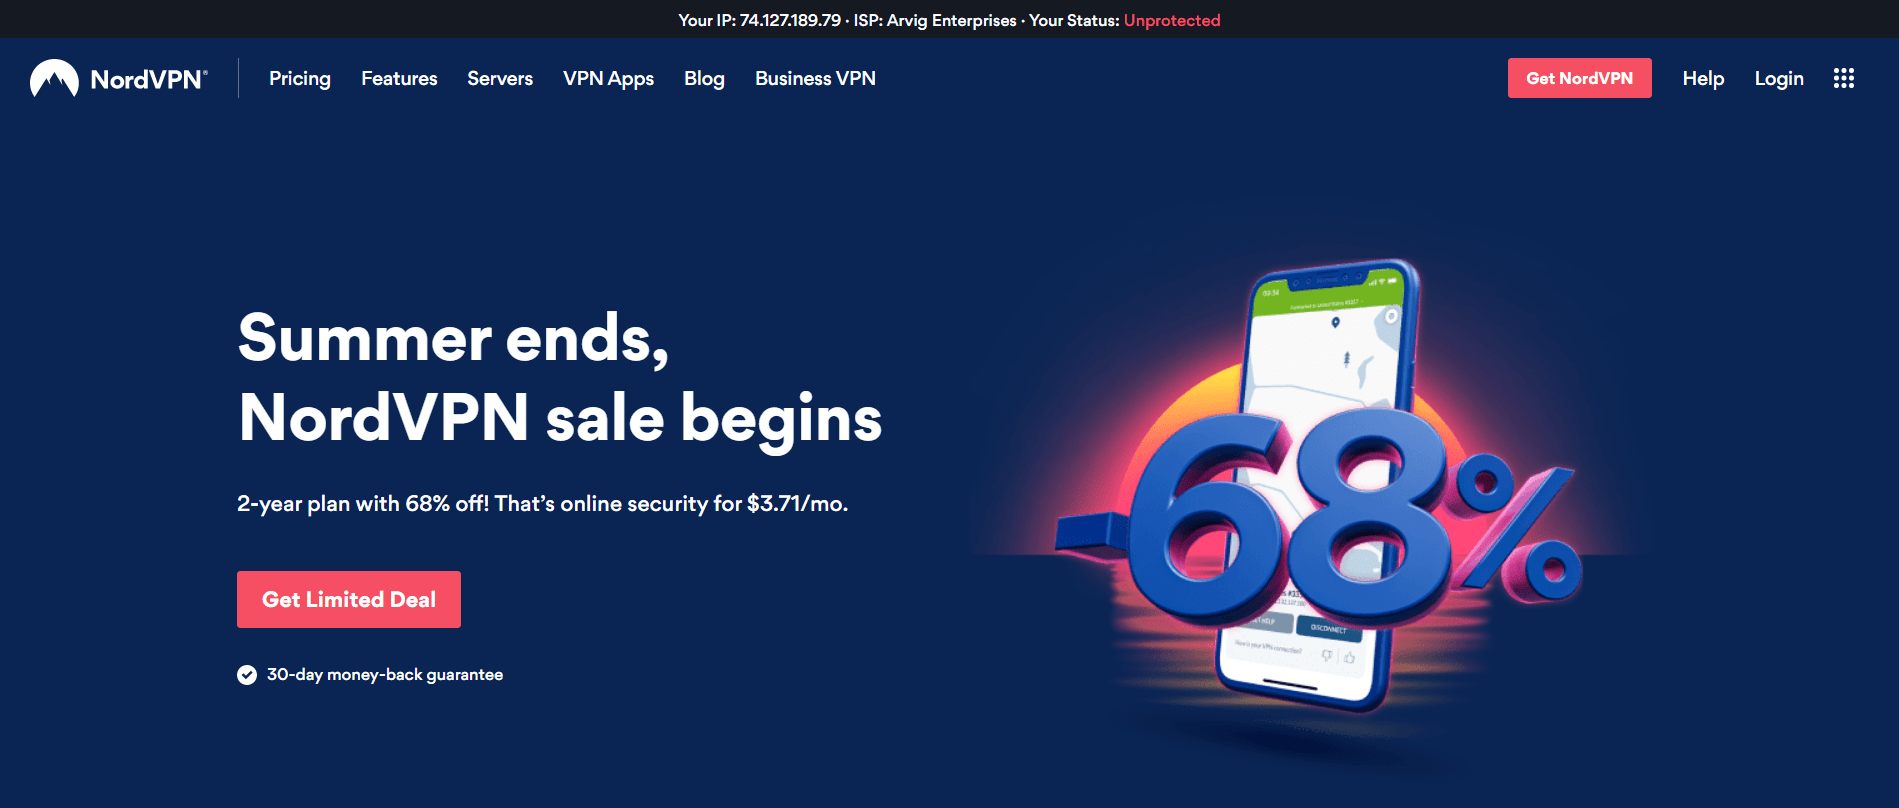 screenshot of NordVPN's homepage